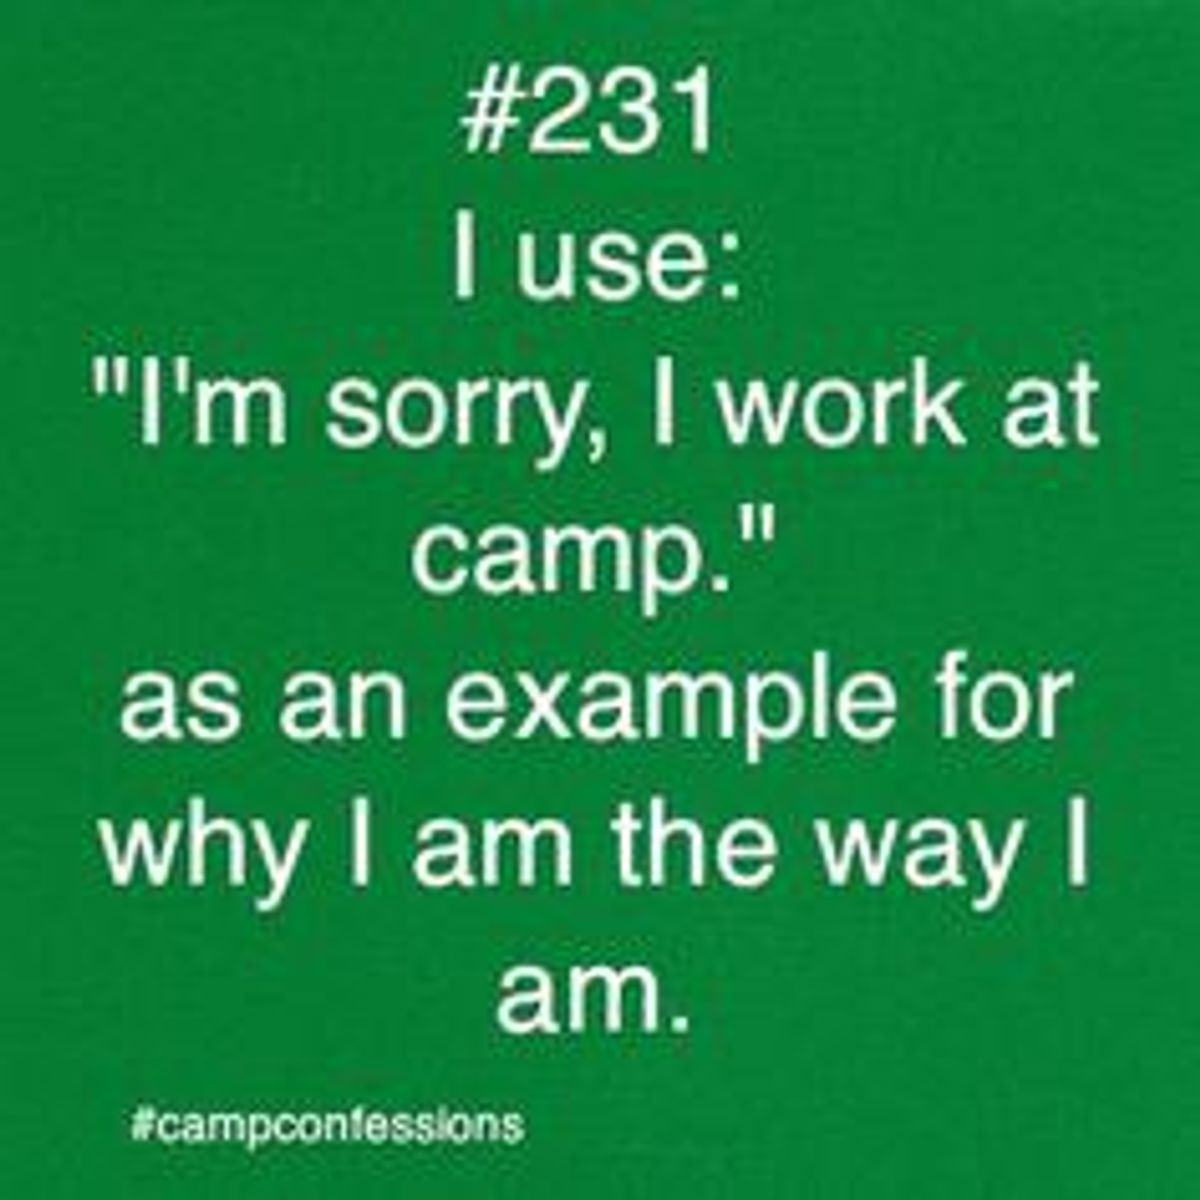 Summer Camp Phrases That Stick With You The Rest Of The Year